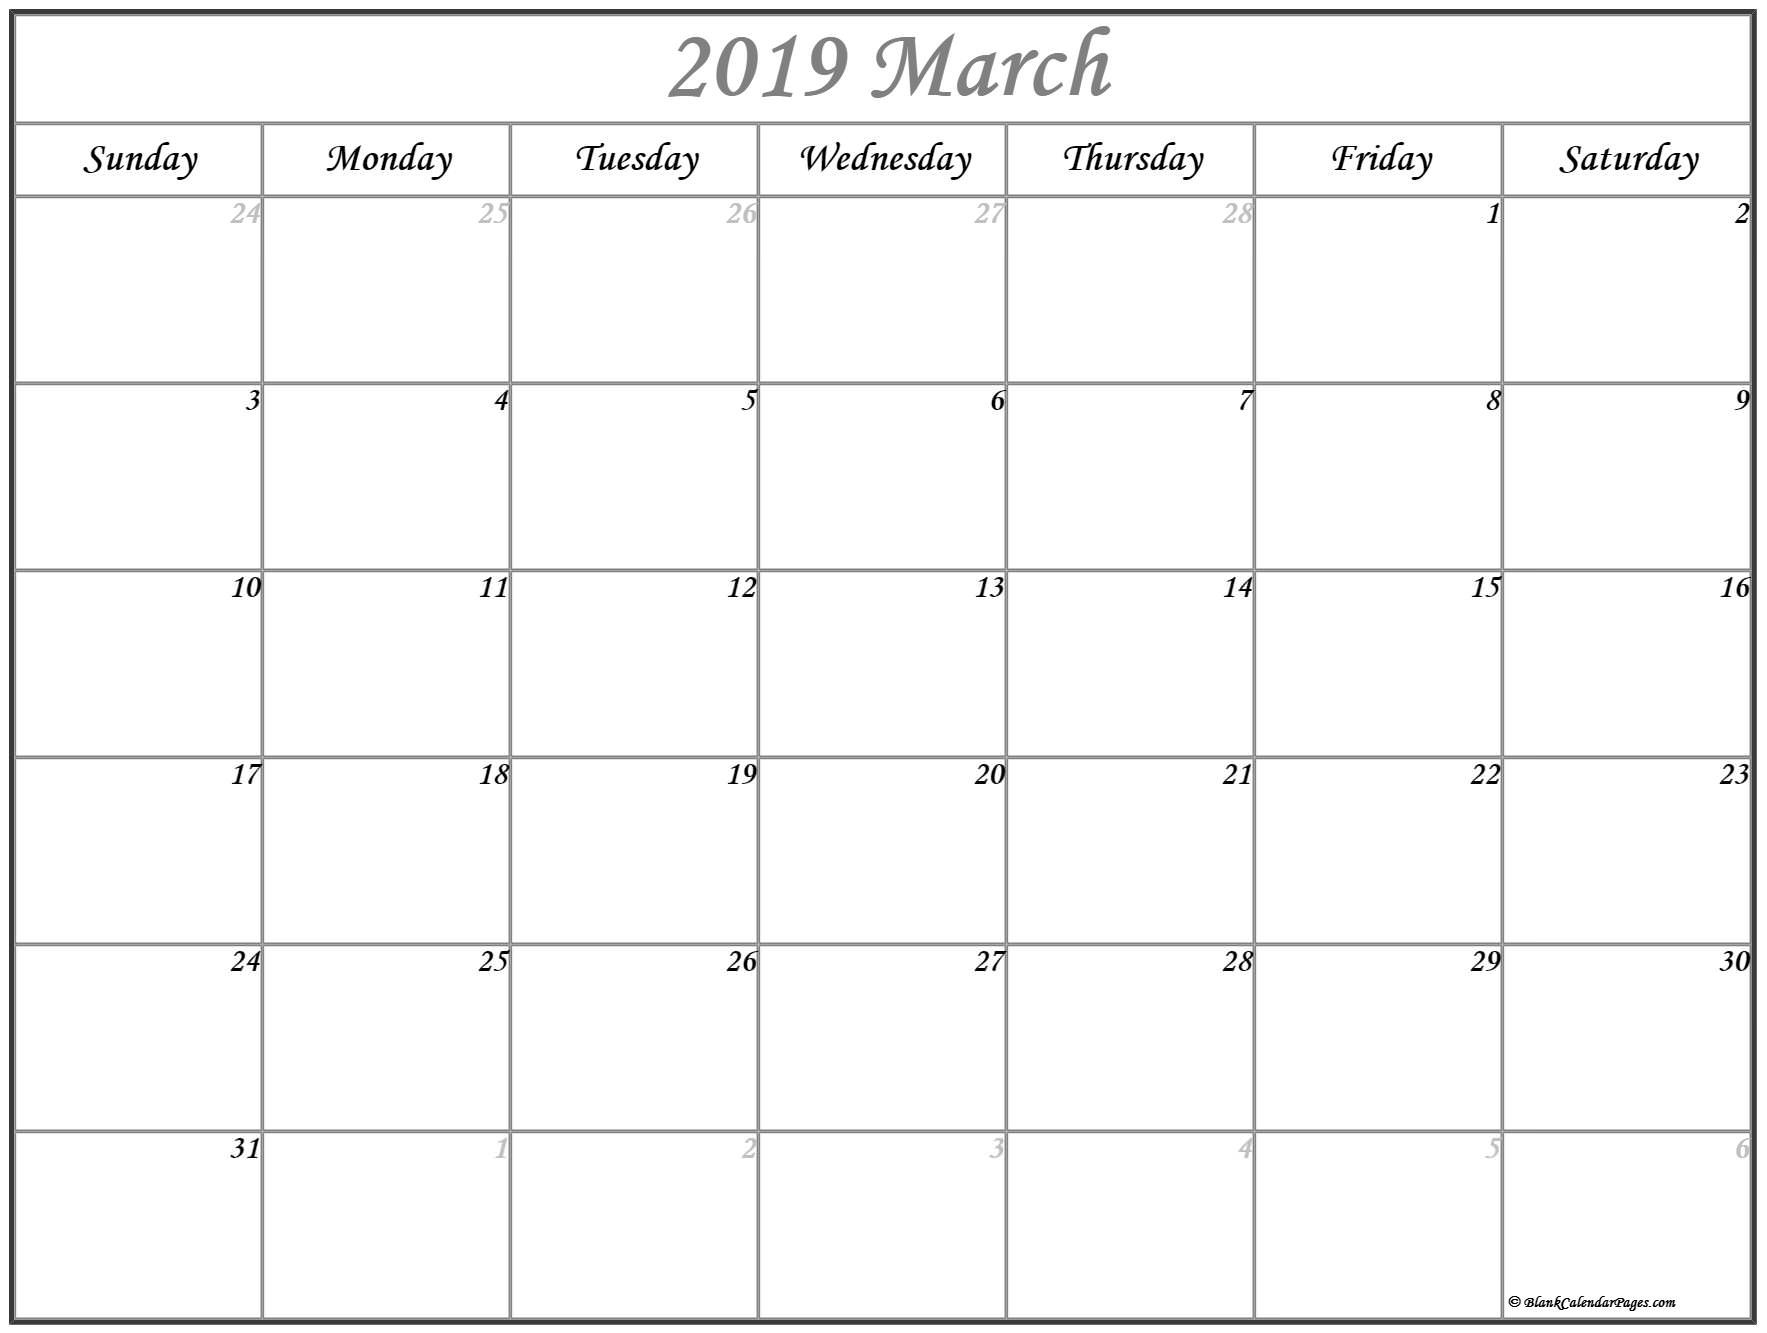 March Holiday Calendar 2019 Más Caliente March 2019 Calendar Of March Holiday Calendar 2019 Mejores Y Más Novedosos March 2019 Calendar Printable with Holidays